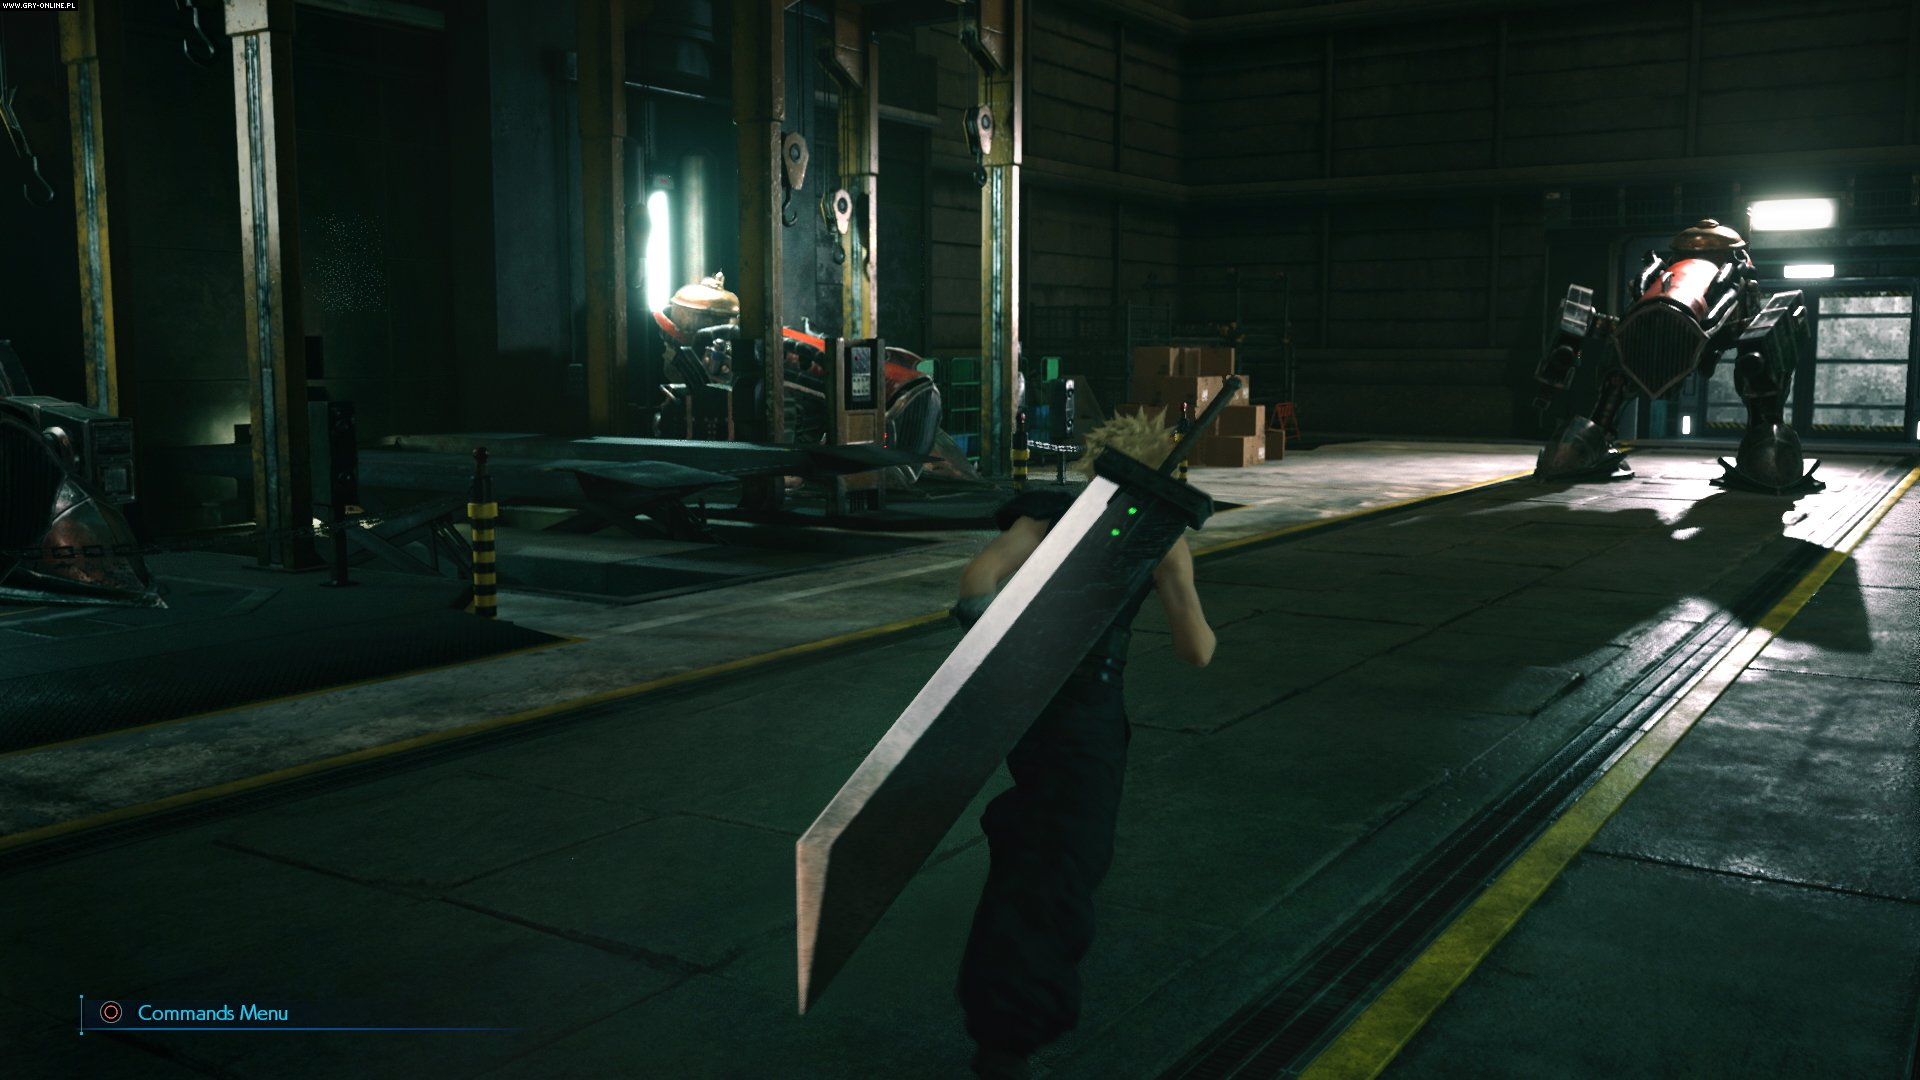 Final Fantasy VII Remake PS4 Games Image 63/86, Square-Enix / Eidos